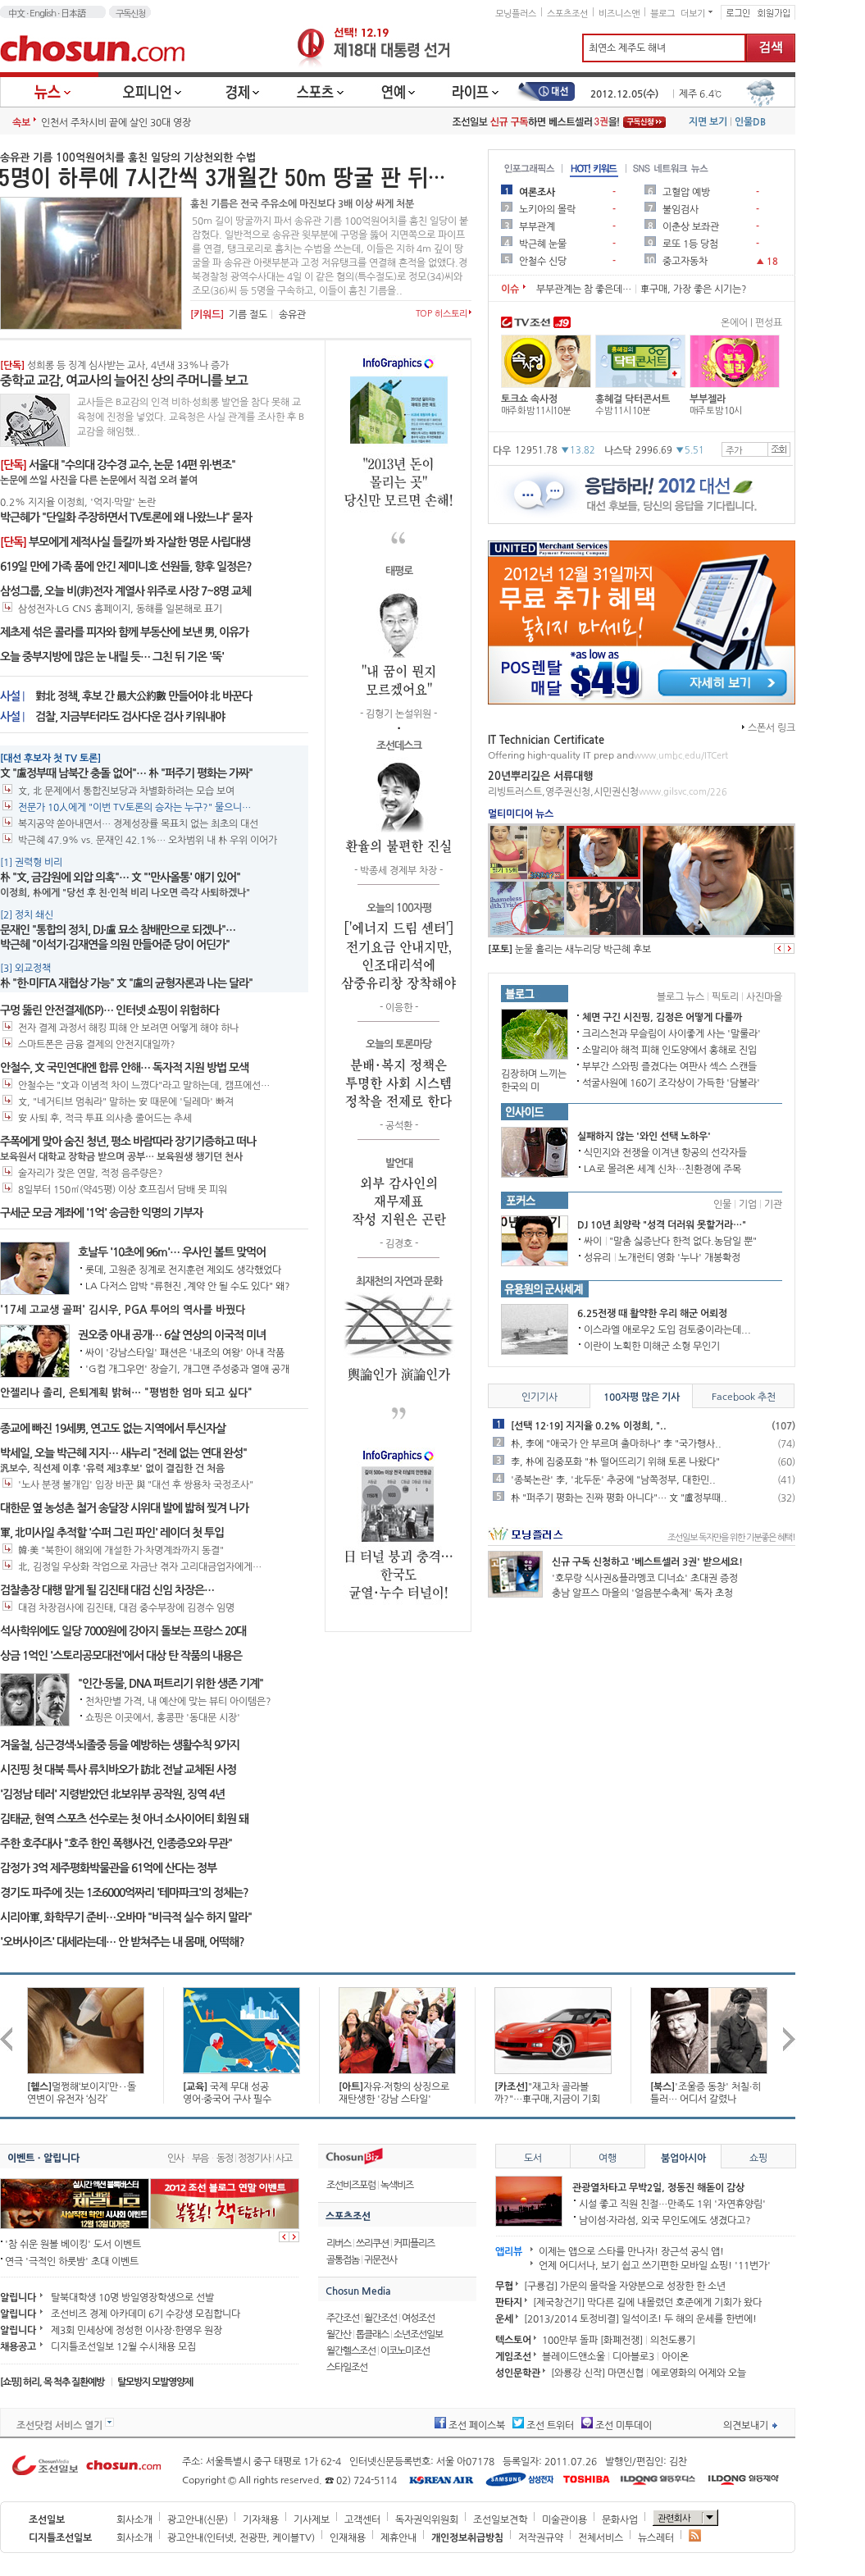 chosun.com at Wednesday Dec. 5, 2012, 12:04 a.m. UTC